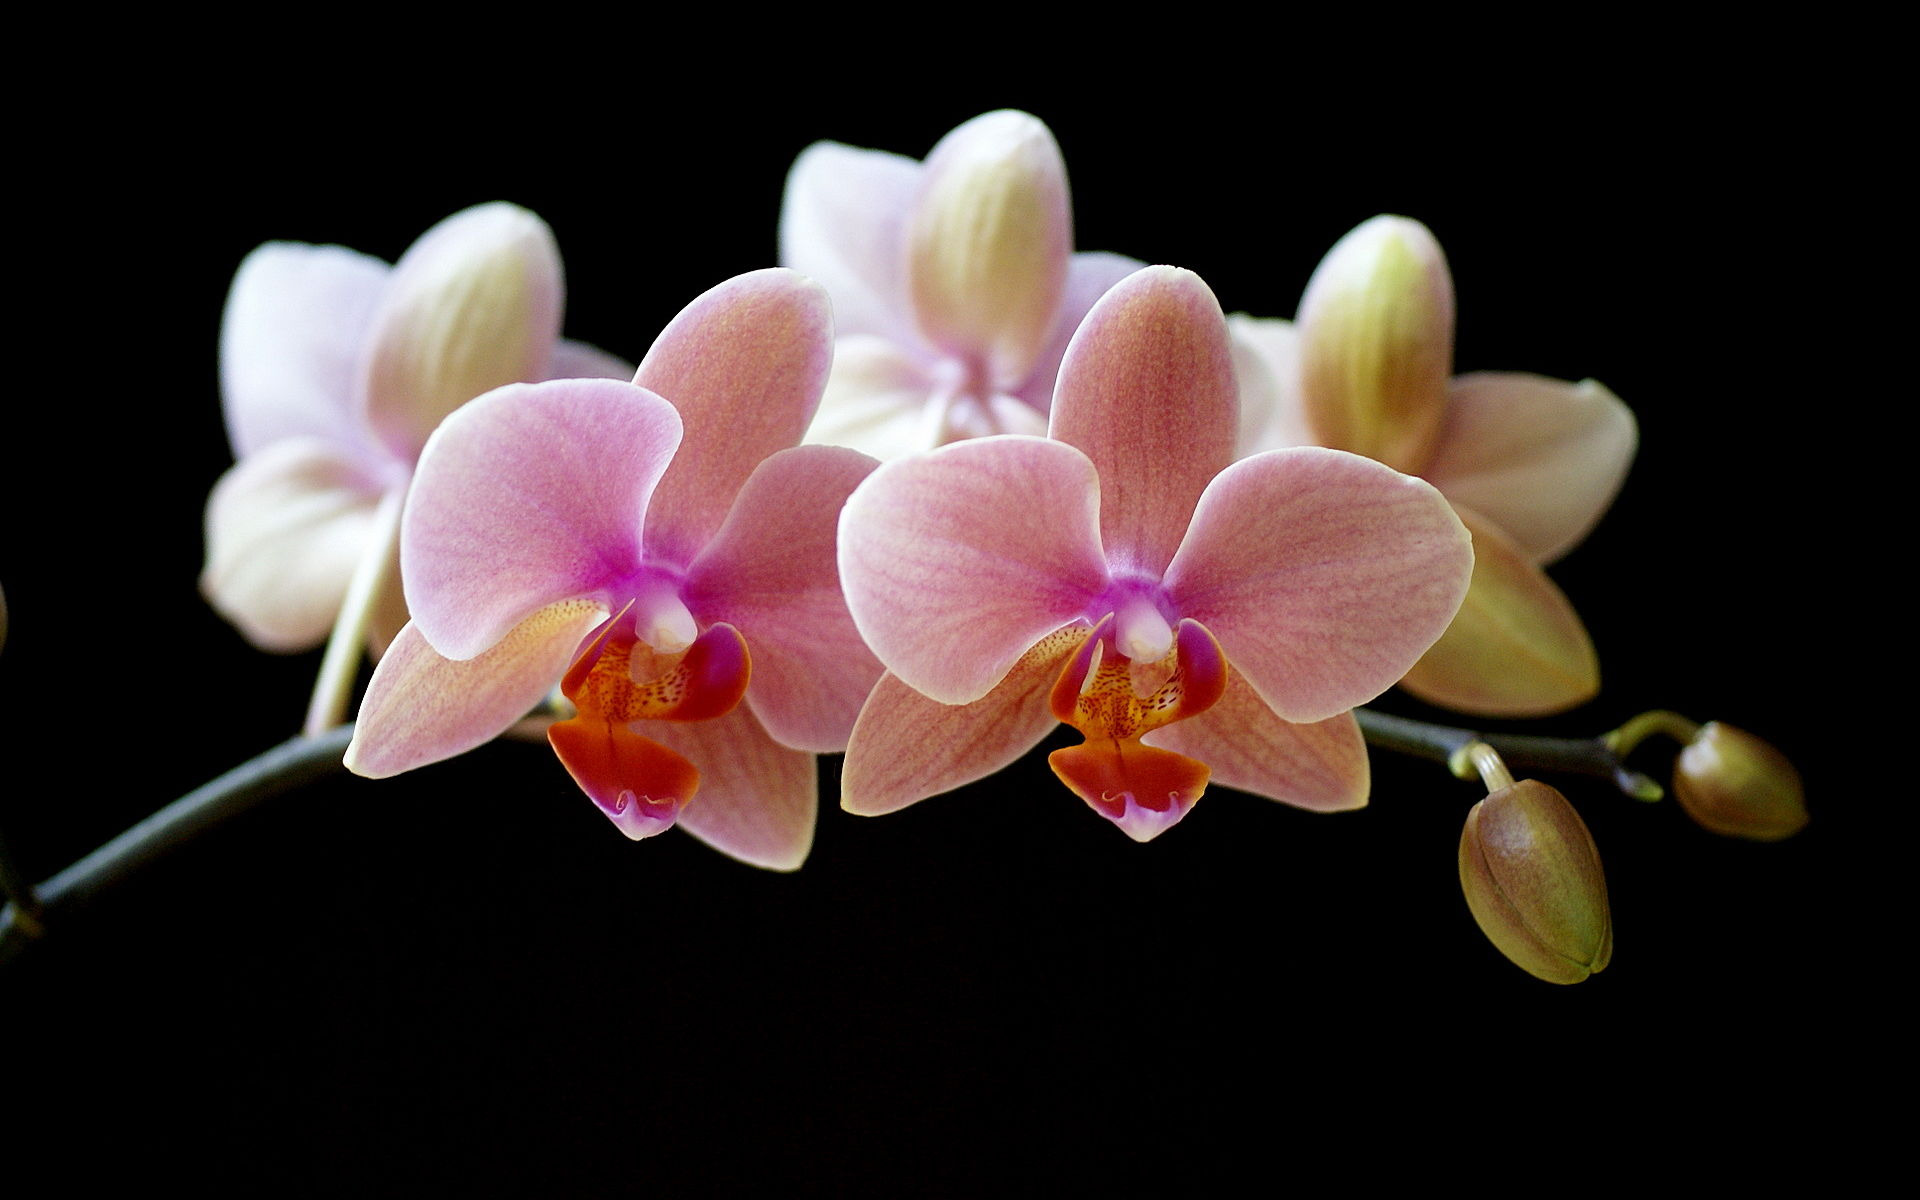 elegant orchid wallpaper in high resolution ideal for widescreen 16:10